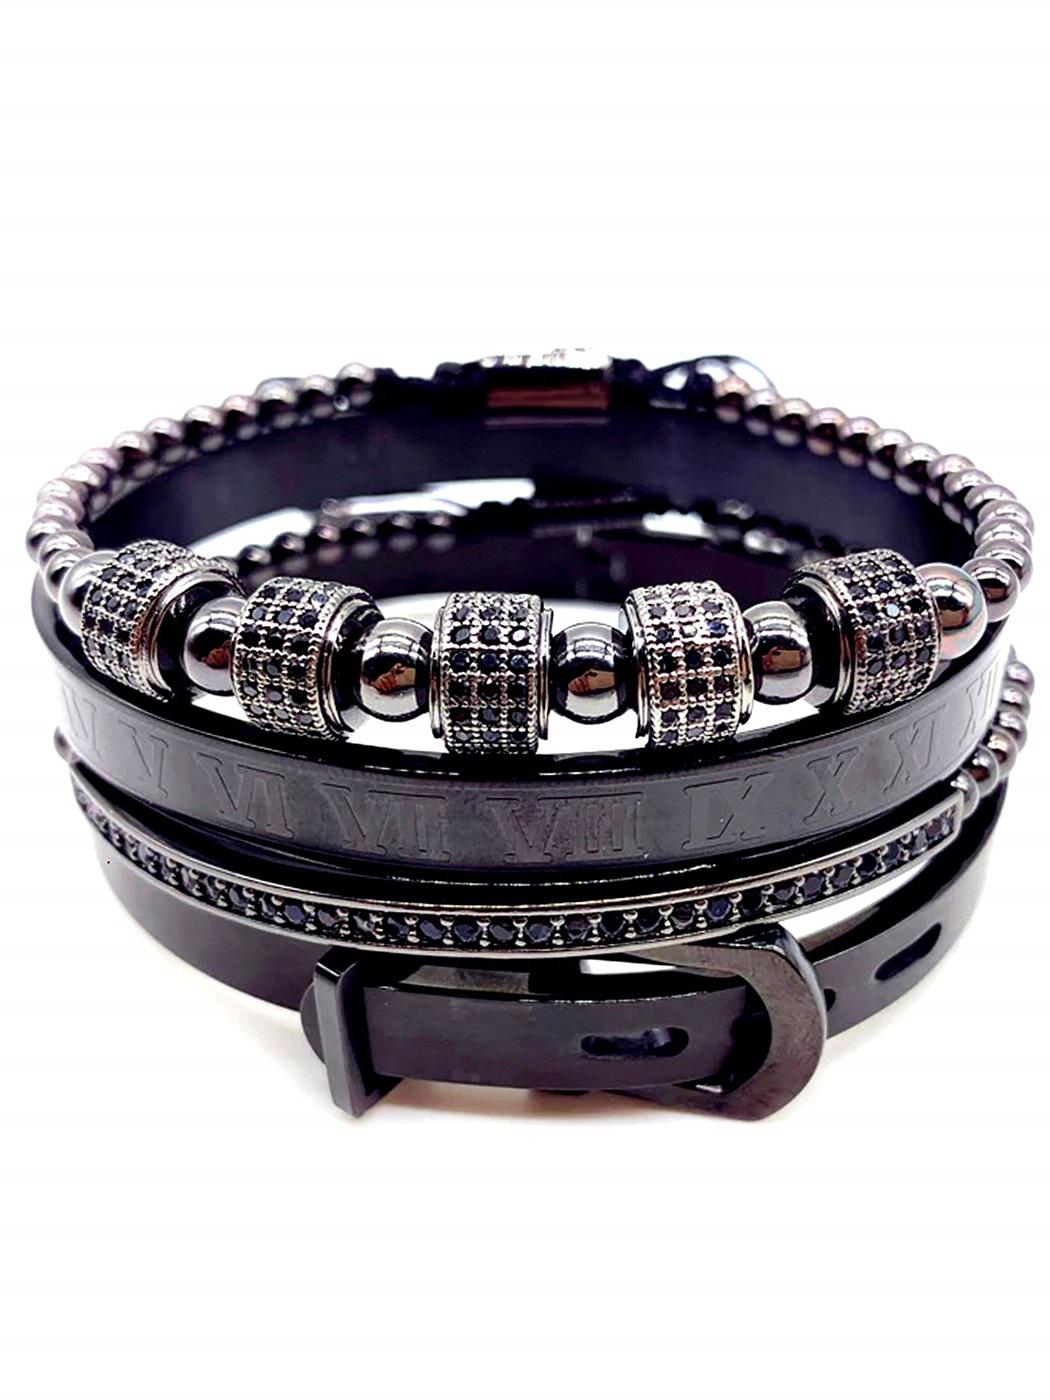 New York, Los Angeles, Chicago, Houston, Phoenix, Philadelphia, San Antonio, San Diego, Dallas, San Jose, Austin, Jacksonville, Fort Worth, Columbus, Charlotte, San Francisco, Indianapolis, Seattle, Denver, Washington,Mens Black Laced Bracelet, Amazon Black Friday, Amazon Black Friday Deals, Black Friday Deals Amazon, Black Crown Bracelet, Royal Crown Bracelet Black, Black Bead Bracelet With Crown, Masters Stack Black Bracelet Set New York Collection-min